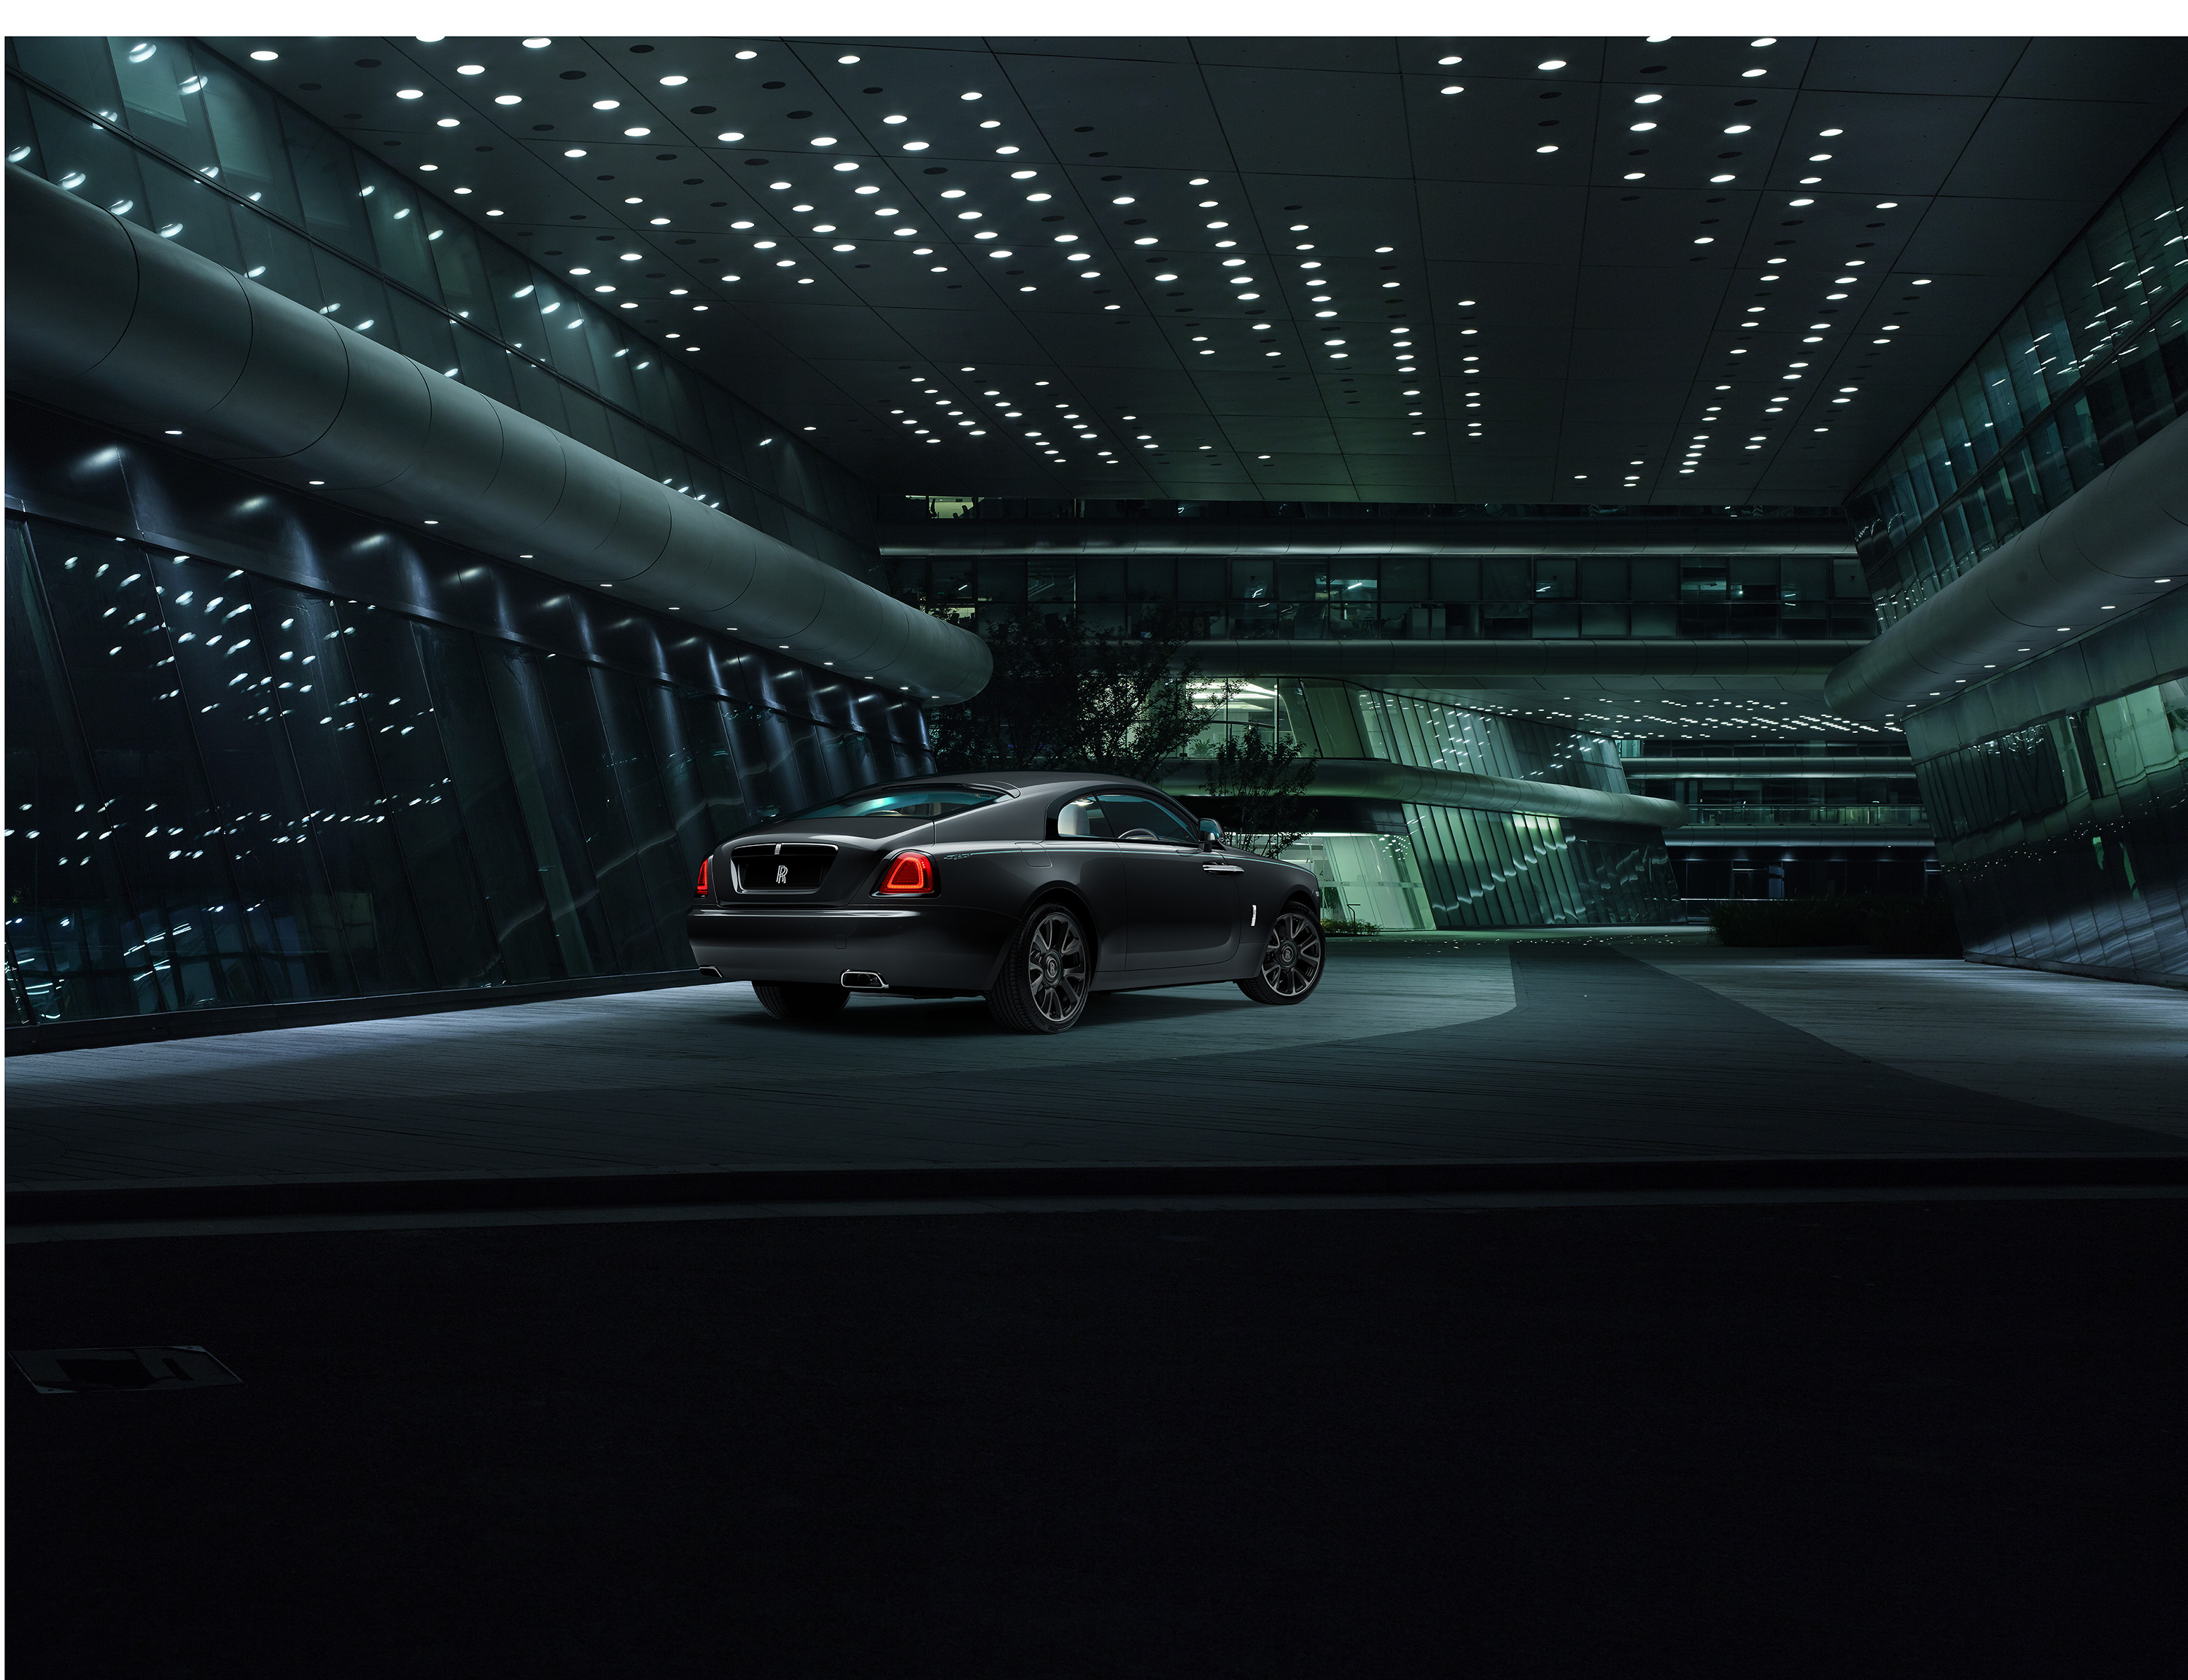 ROLLS ROYCE REVEALS SUBTLE CLUES TO MYSTERIOUS WRAITH KRYPTOS CODE.